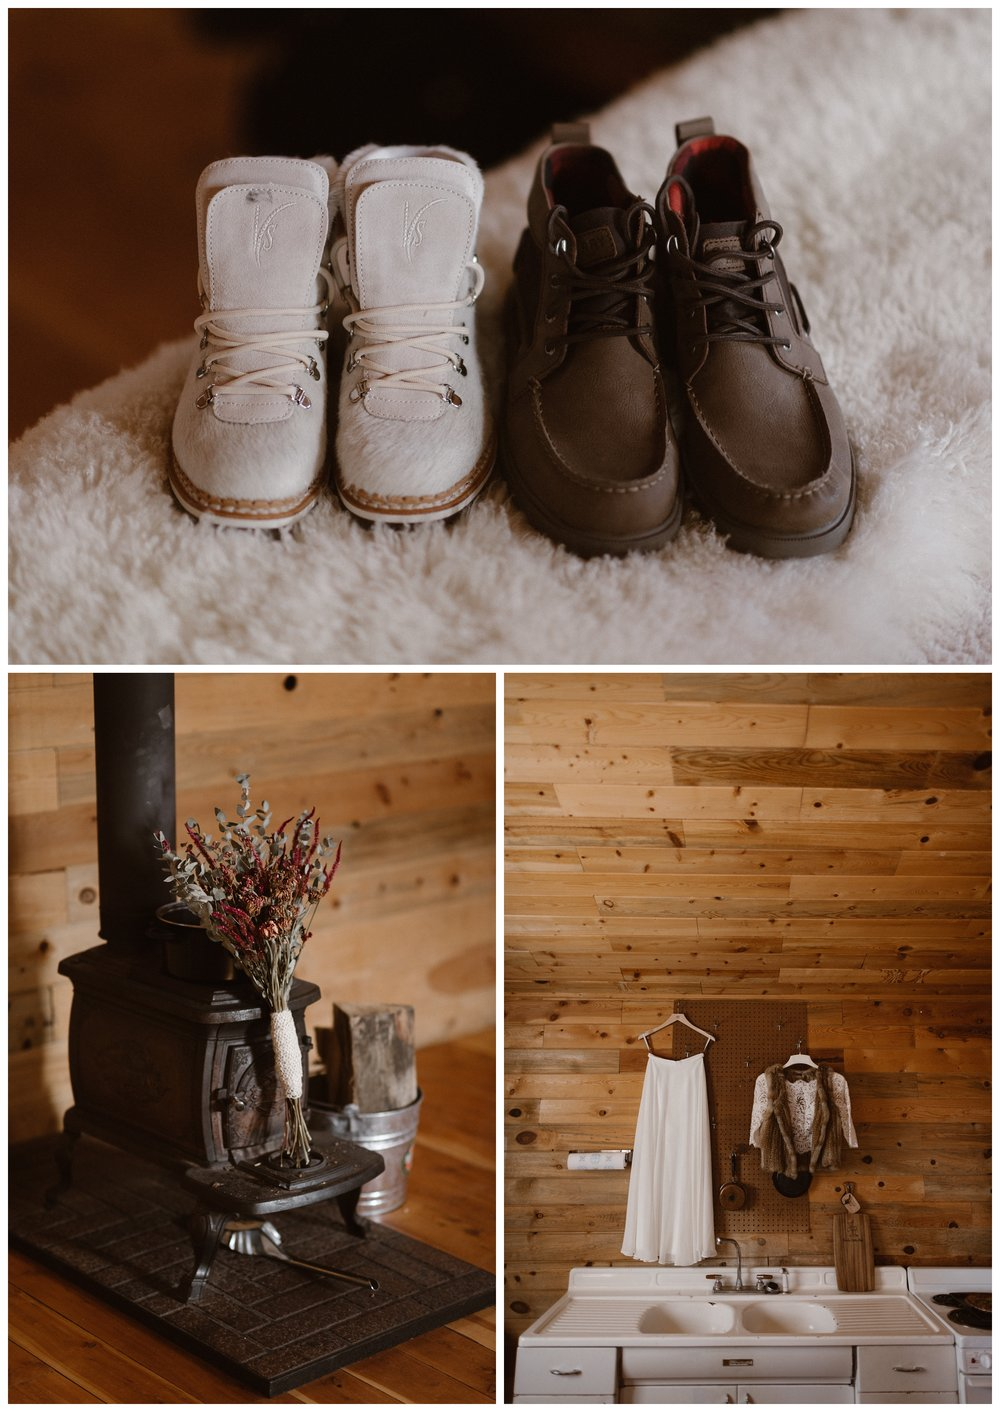 A hand picked and dried floral bouquet, fur vest, and new white hiking boots were some of the details for Olivia and Justin's winter wedding. Photo by Maddie Mae Photo, Adventures Instead.